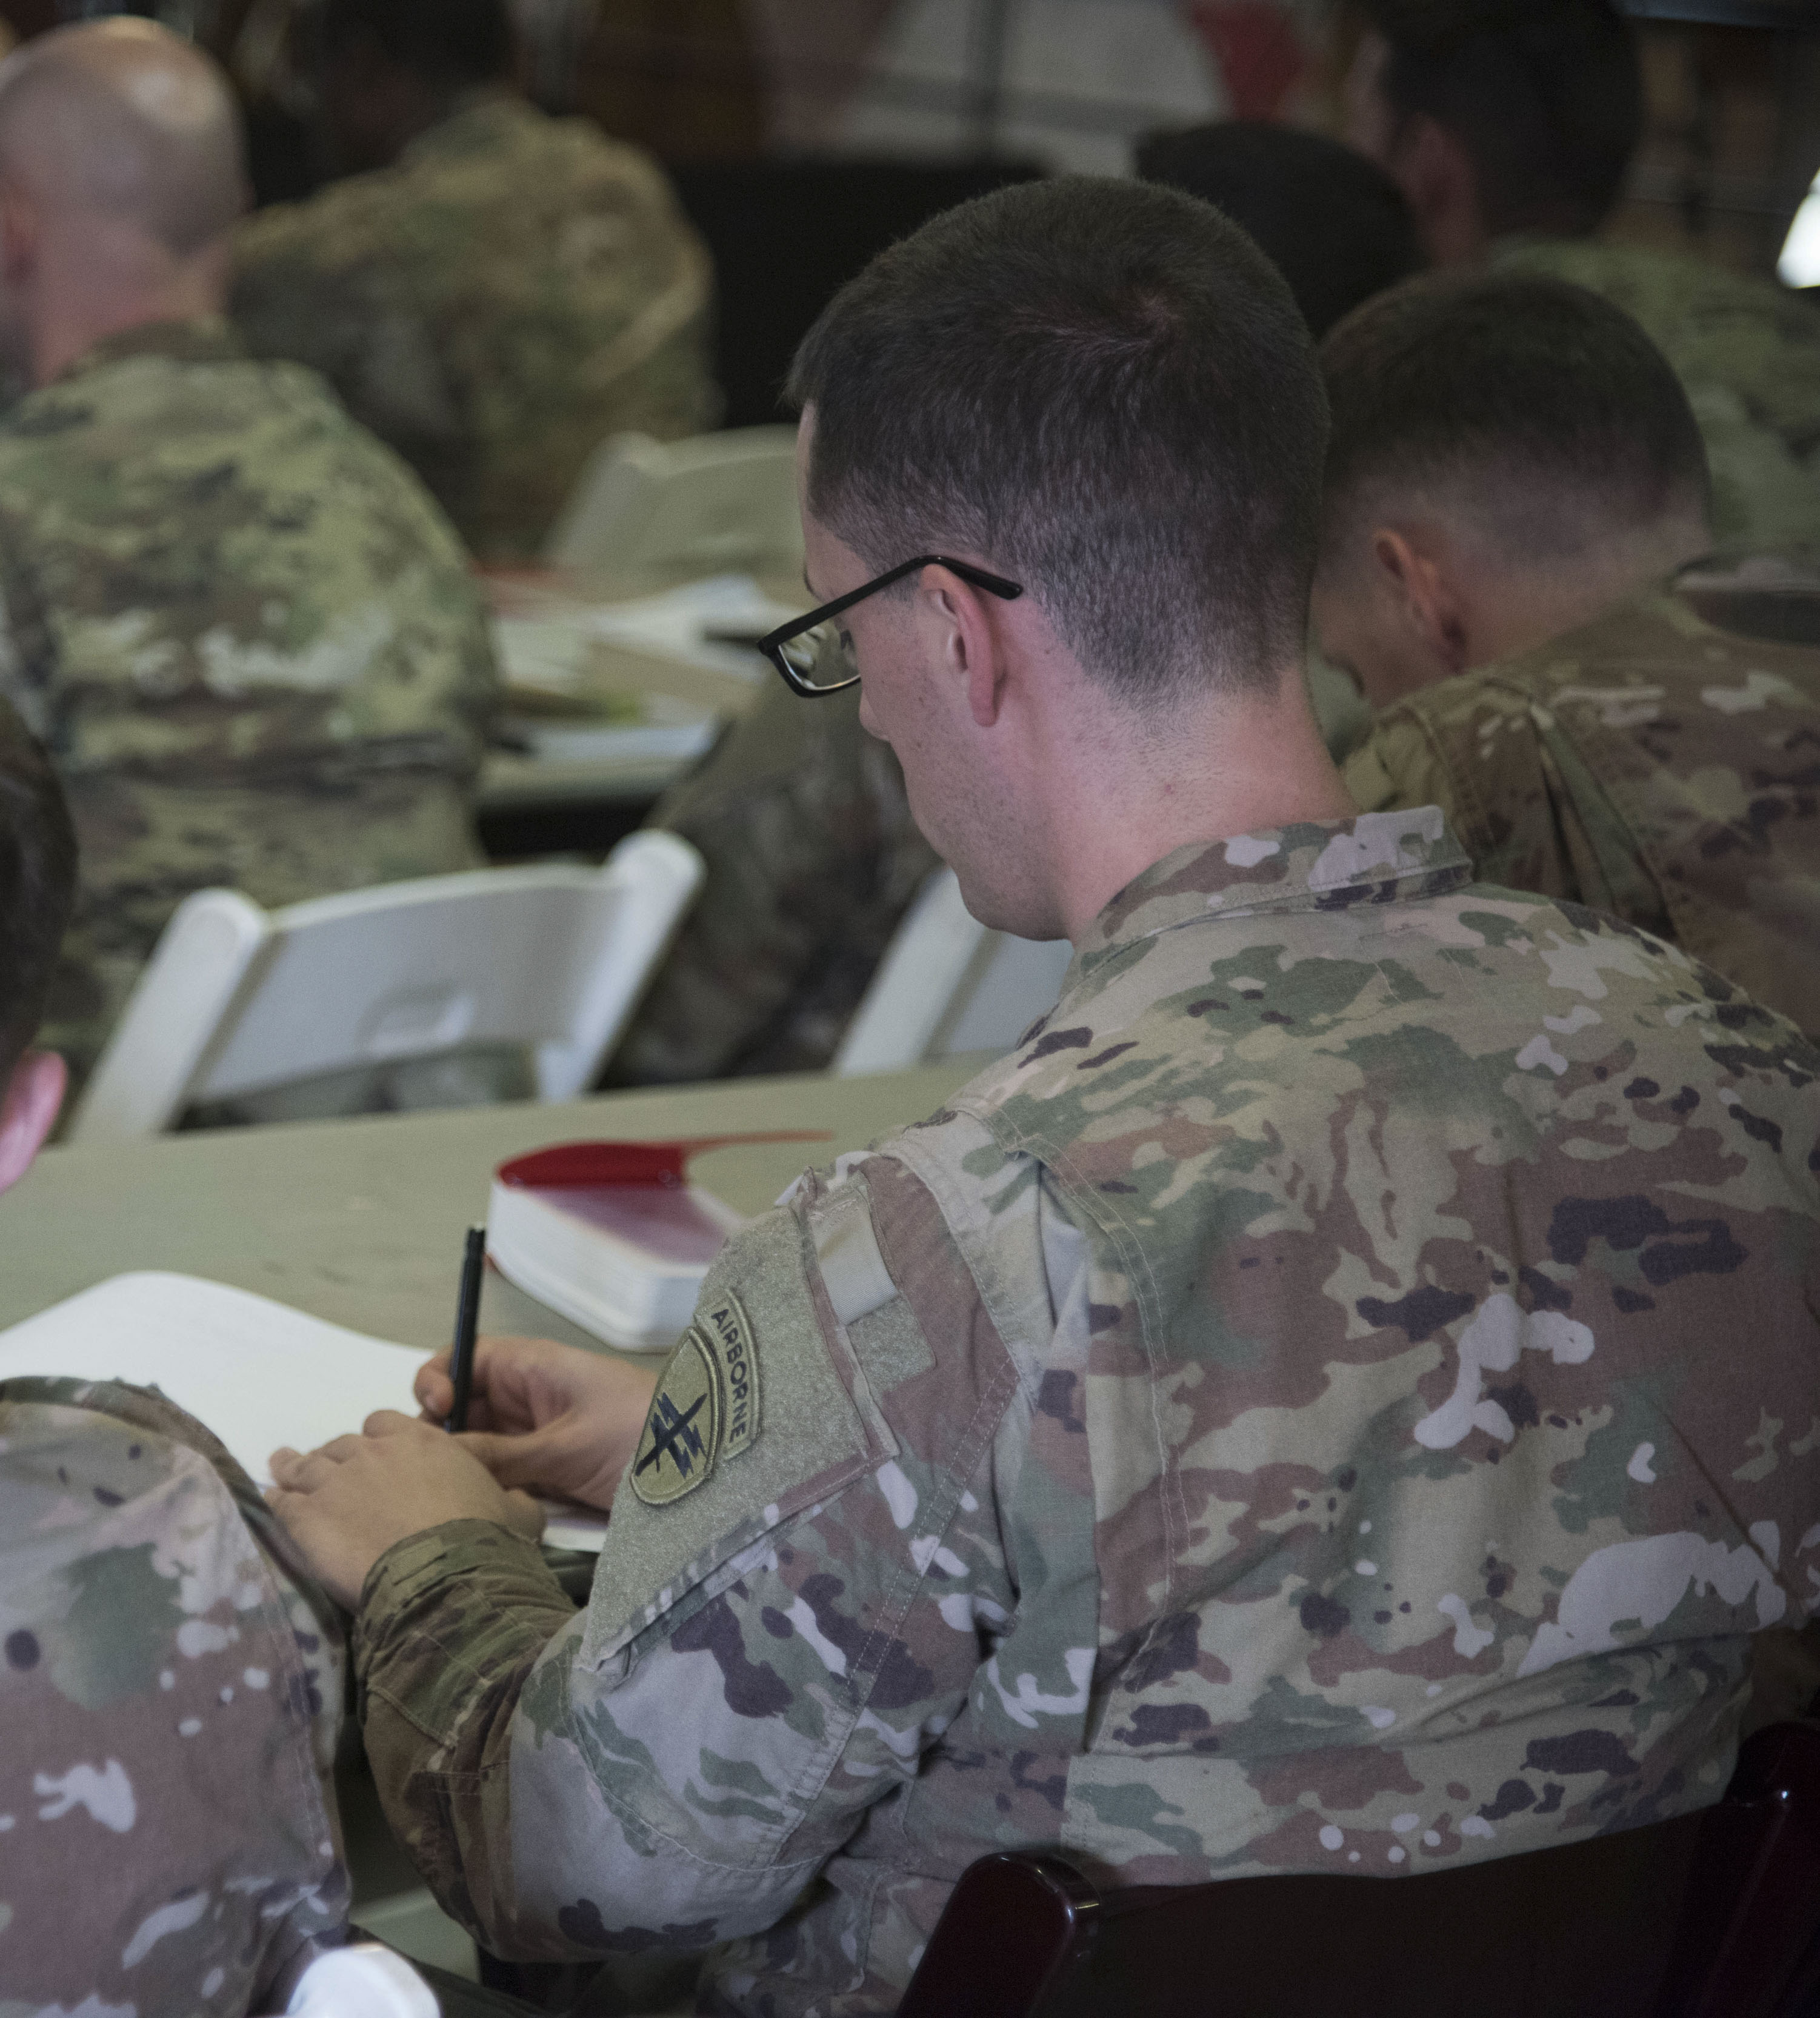 U.S. Army Capt. Brendan Quinn, with the 404th Civil Affairs Battalion, attached to the Combined Joint Task Force - Horn of Africa, takes notes during a U.S. Agency for International Development's Joint Humanitarian Operations Course at Camp Lemonnier, Djibouti, March 7, 2018. Members attended the two-day course, which highlighted international disaster response, best practices and the U.S. military's role when supporting foreign humanitarian assistance and disaster relief operations. (U.S. Air National Guard photo by Staff Sgt. Allyson L. Manners)